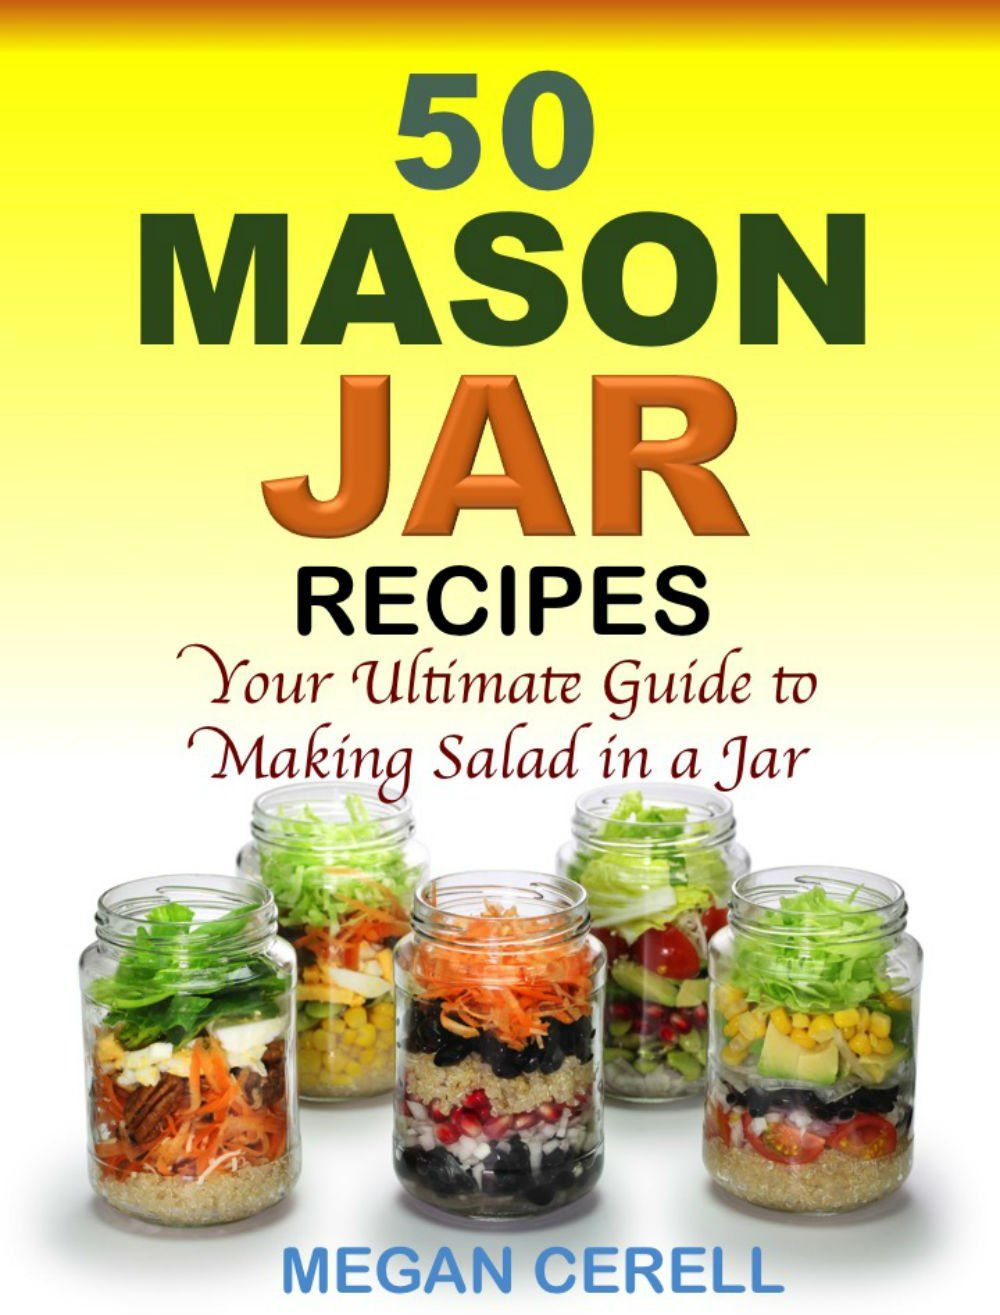 50 Mason Jar Salad Recipes - Your Ultimate Guide to Making Salad in a Jar